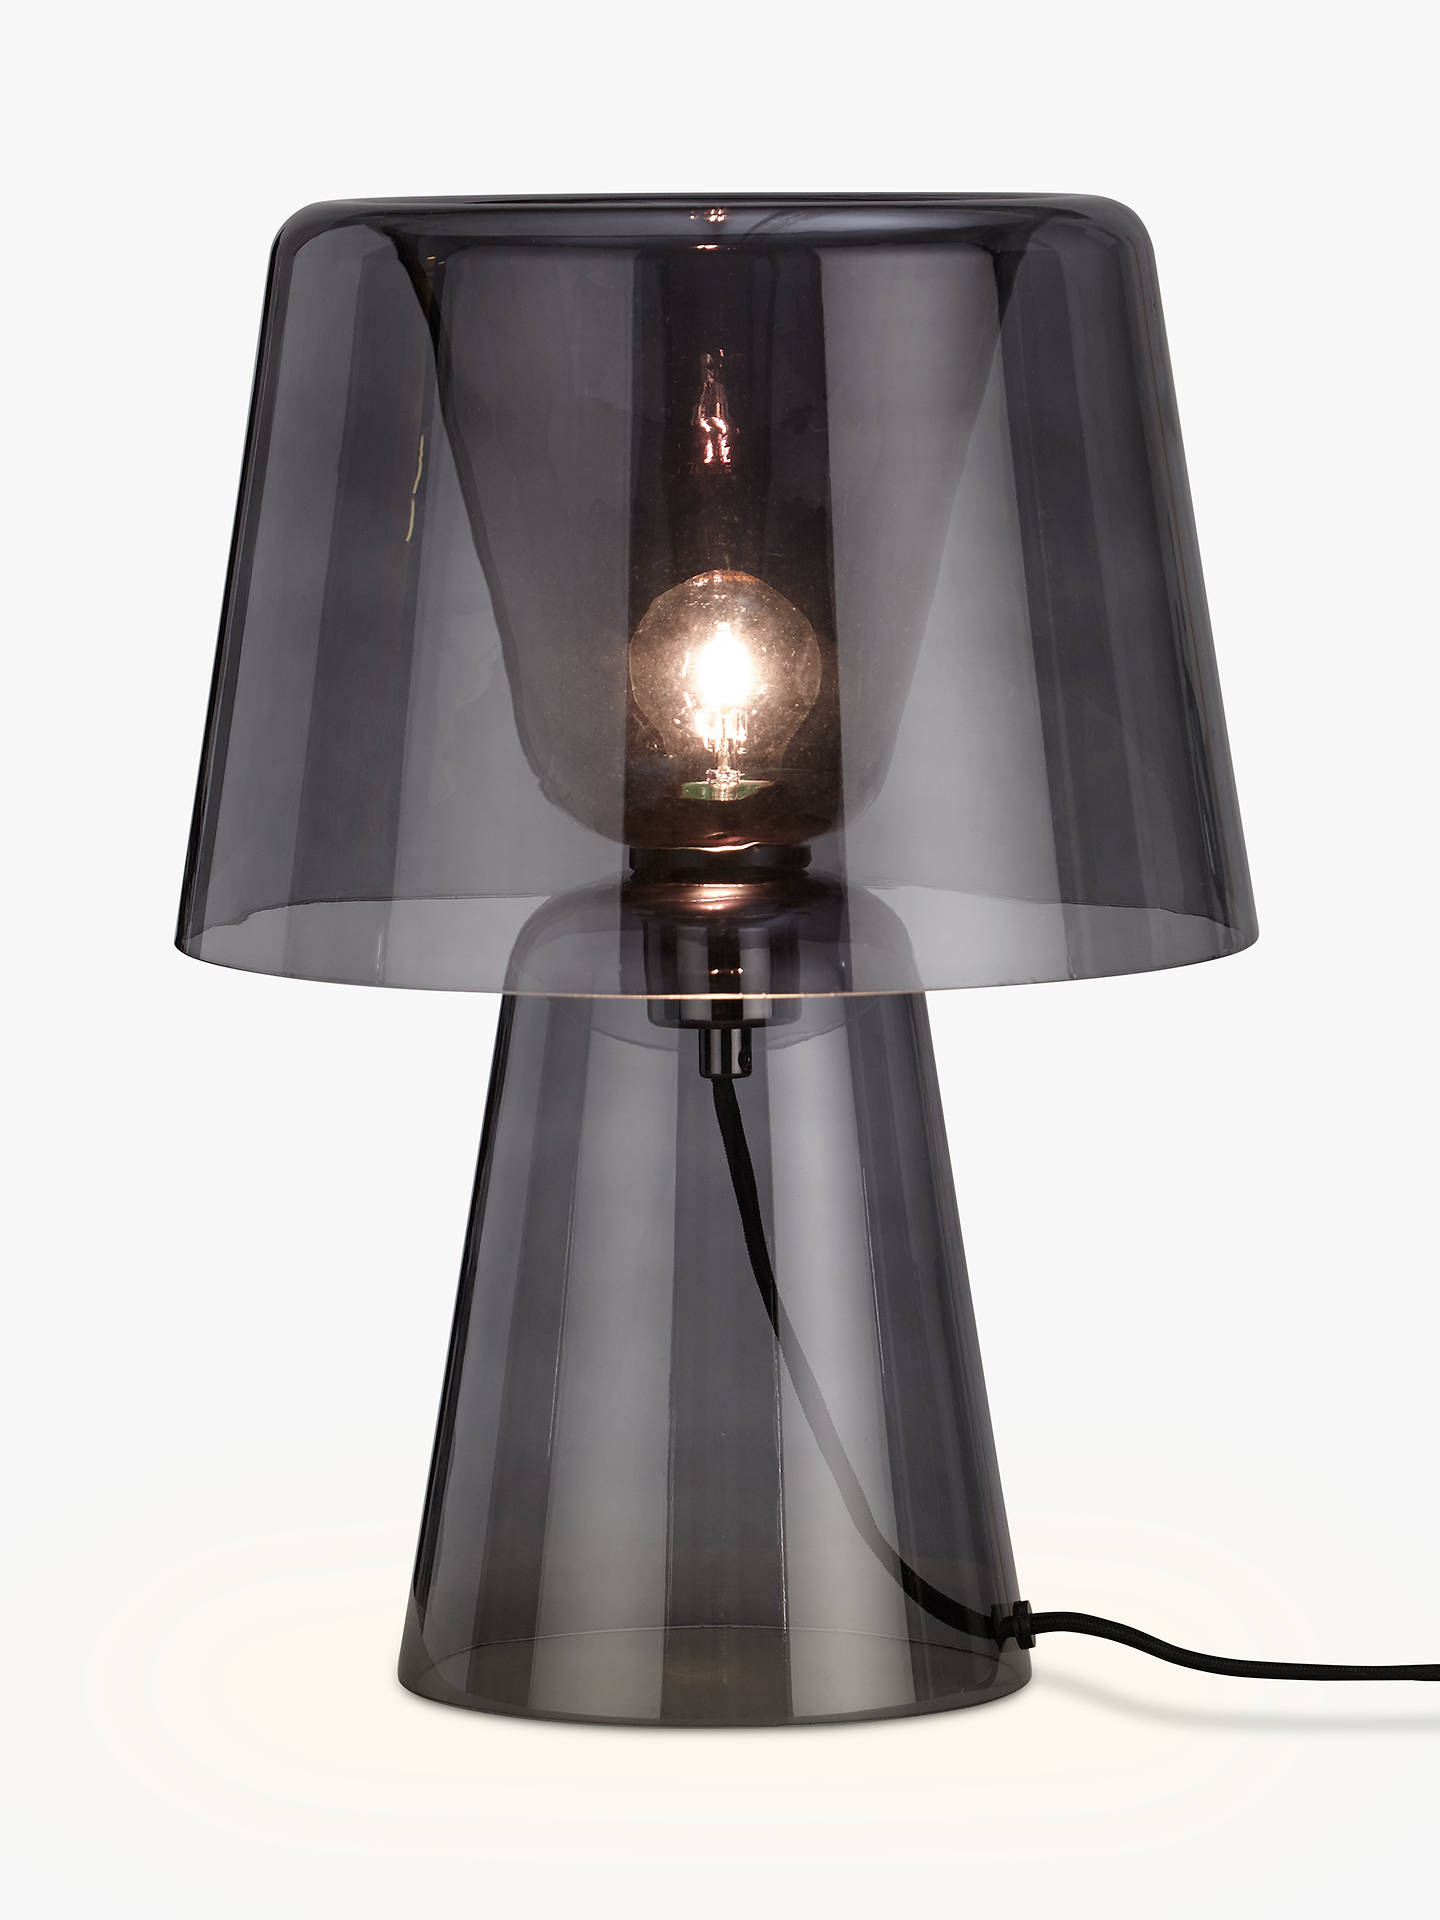 Design project by john lewis no001 large glass table lamp at john buydesign project by john lewis no001 large glass table lamp smoke online at aloadofball Choice Image